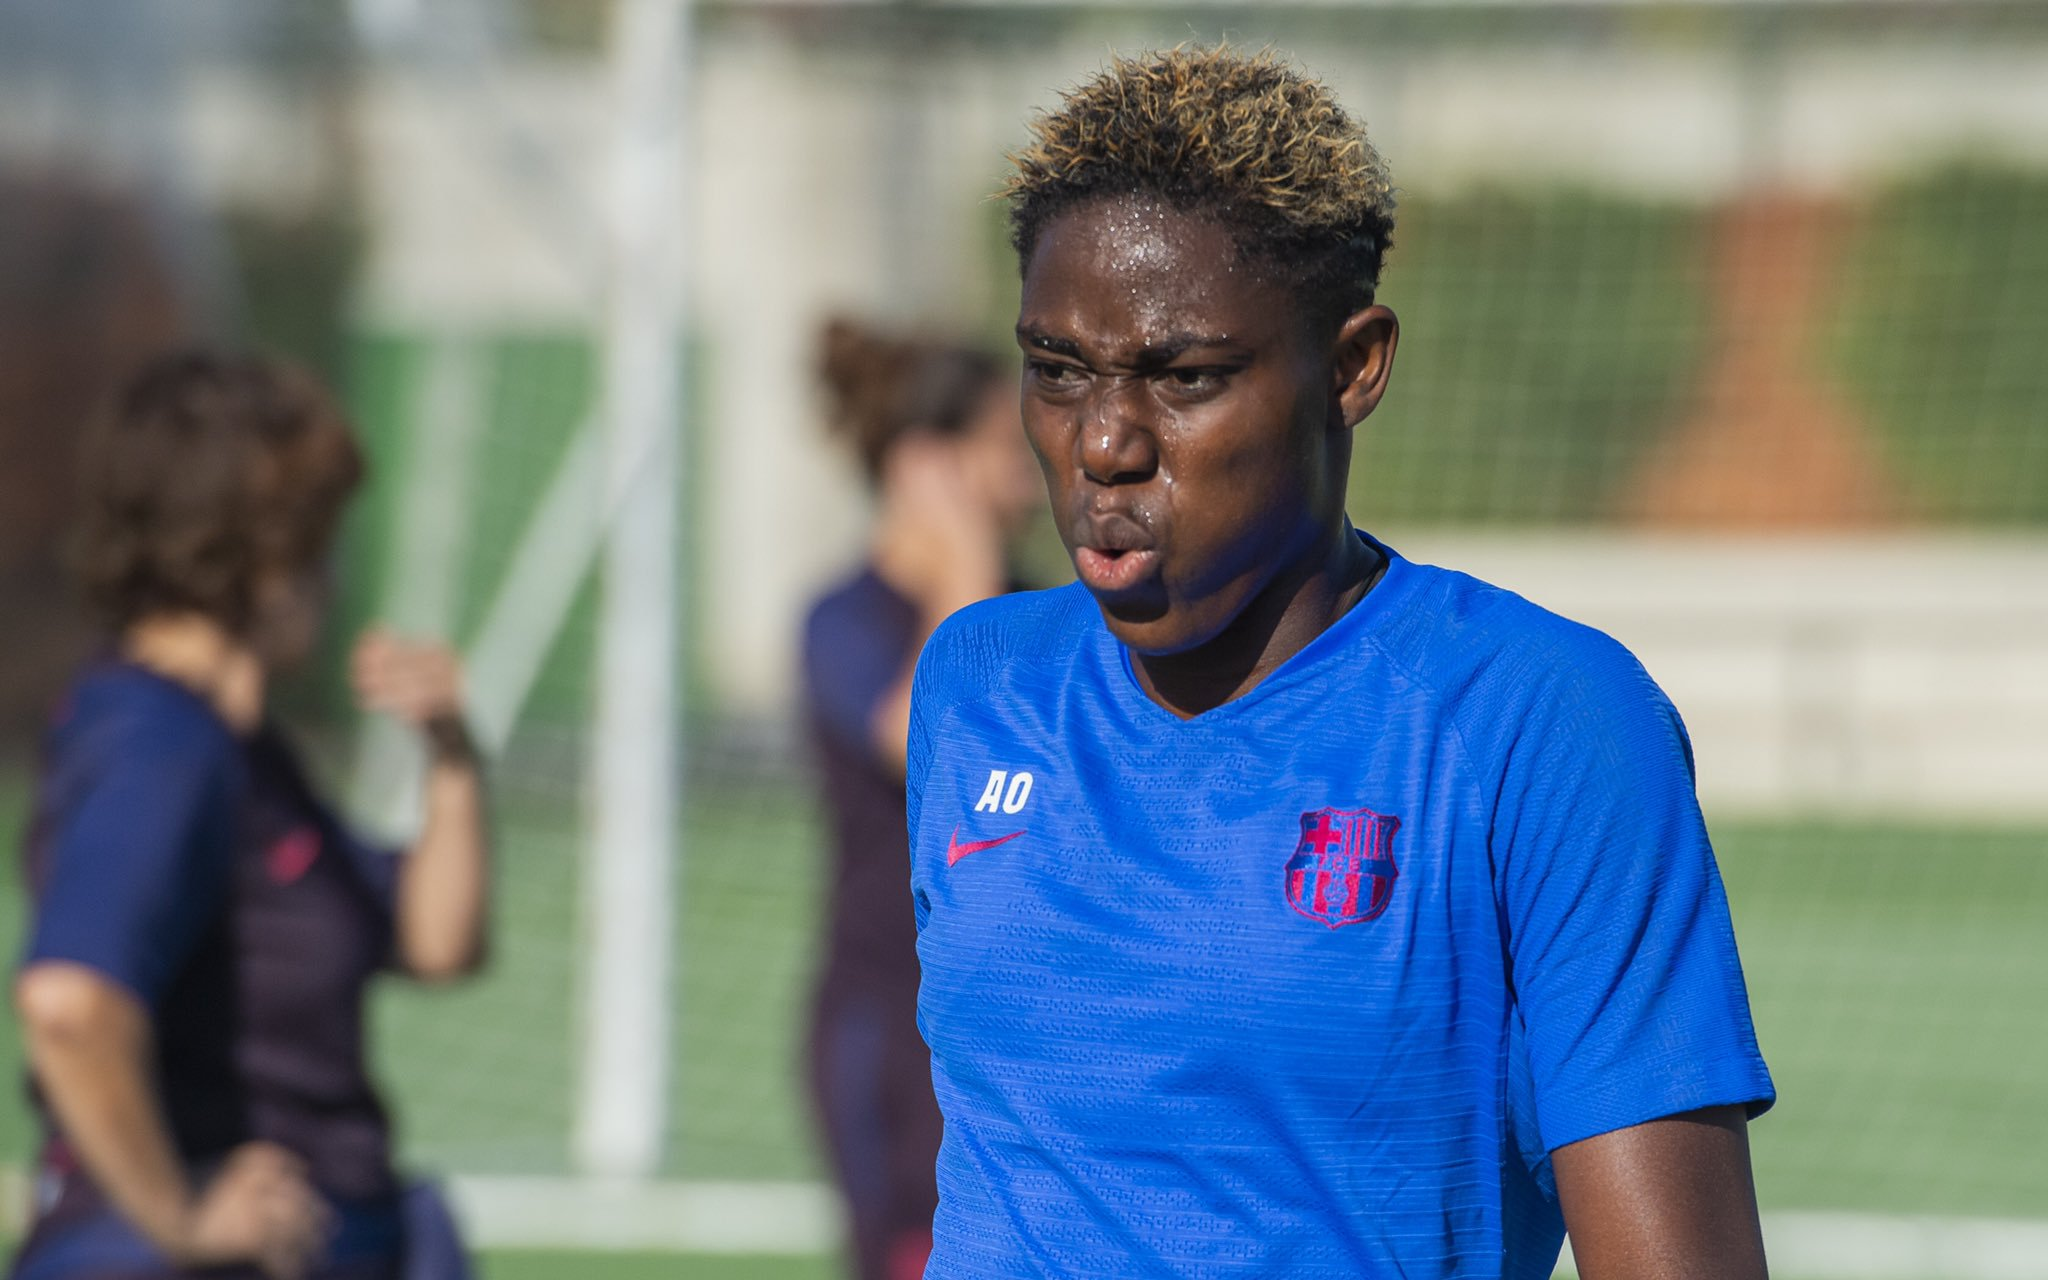 Oshoala Missing, As Ogbiagbevha Scores In 3-1 Loss Against Barcelona